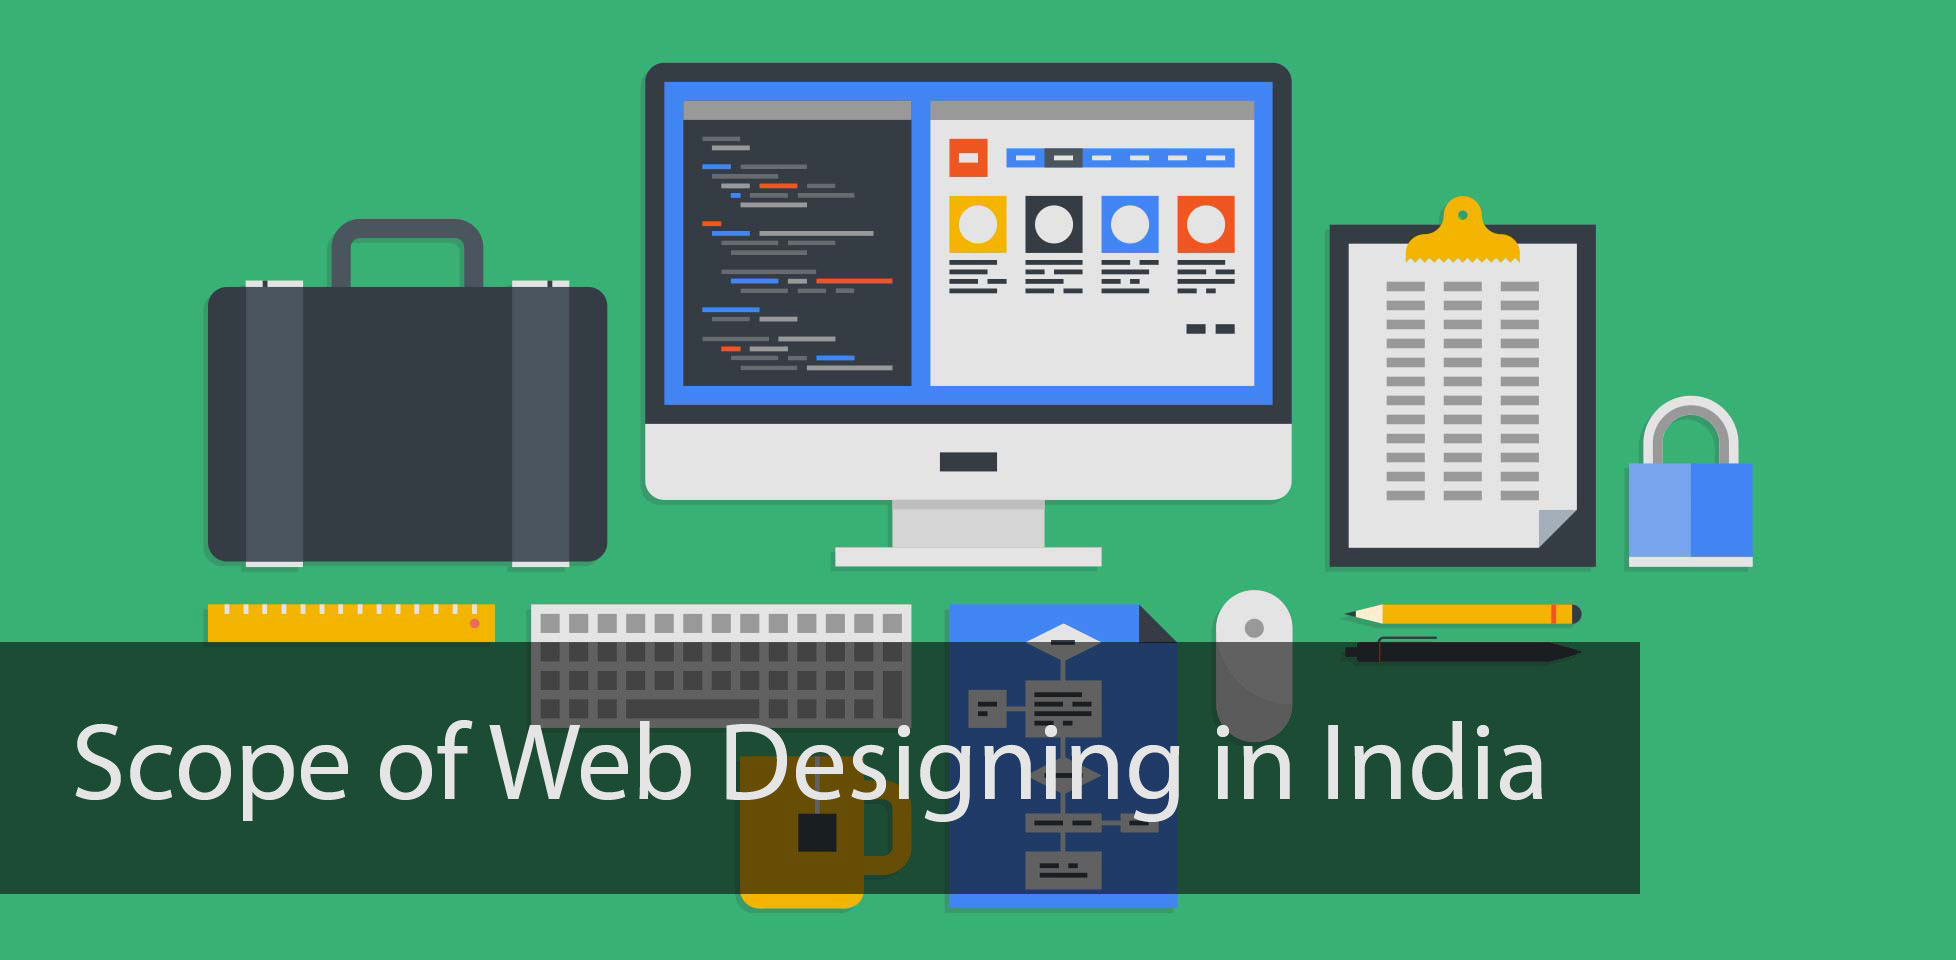 Scope-of-Web-Designing-as-a-Career-in-India